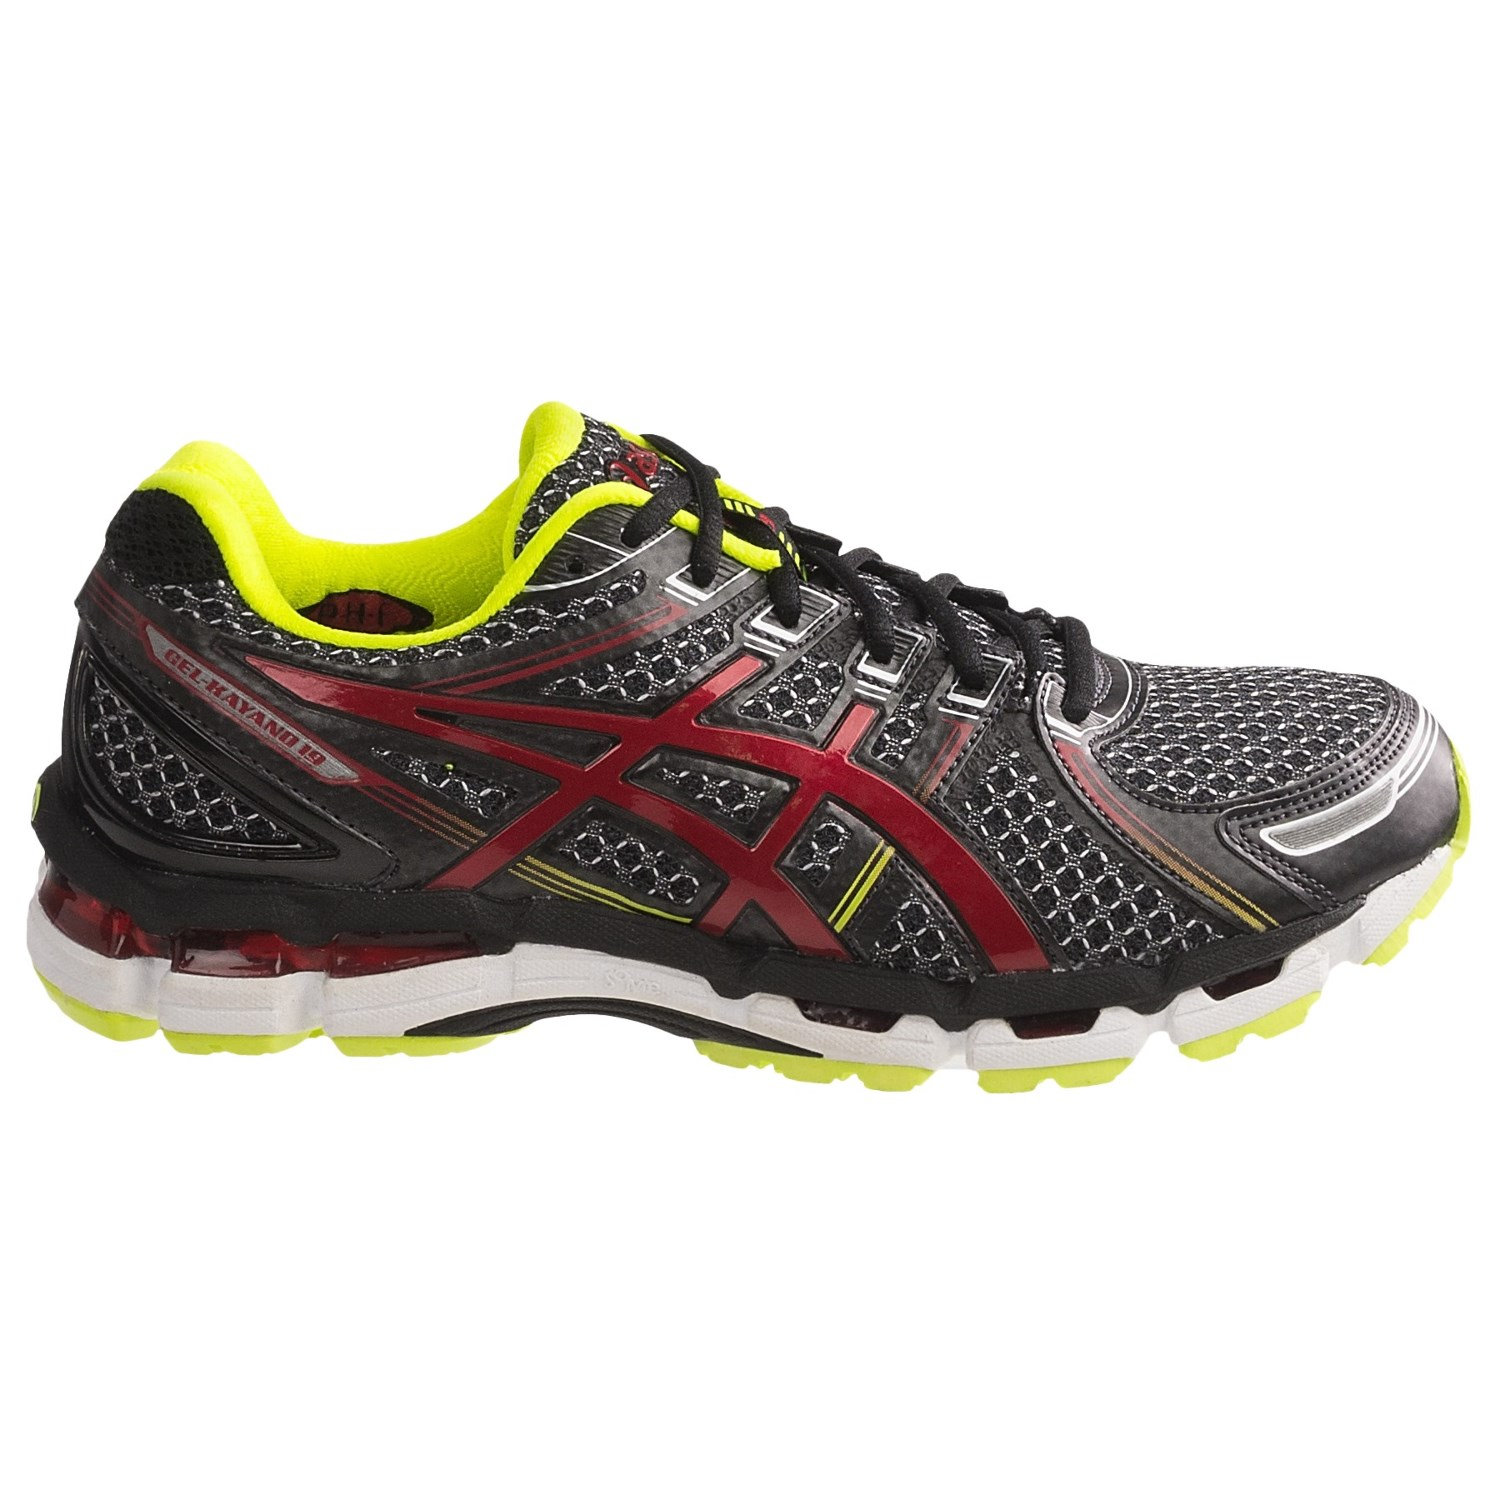 Running Shoes Outlet Canada